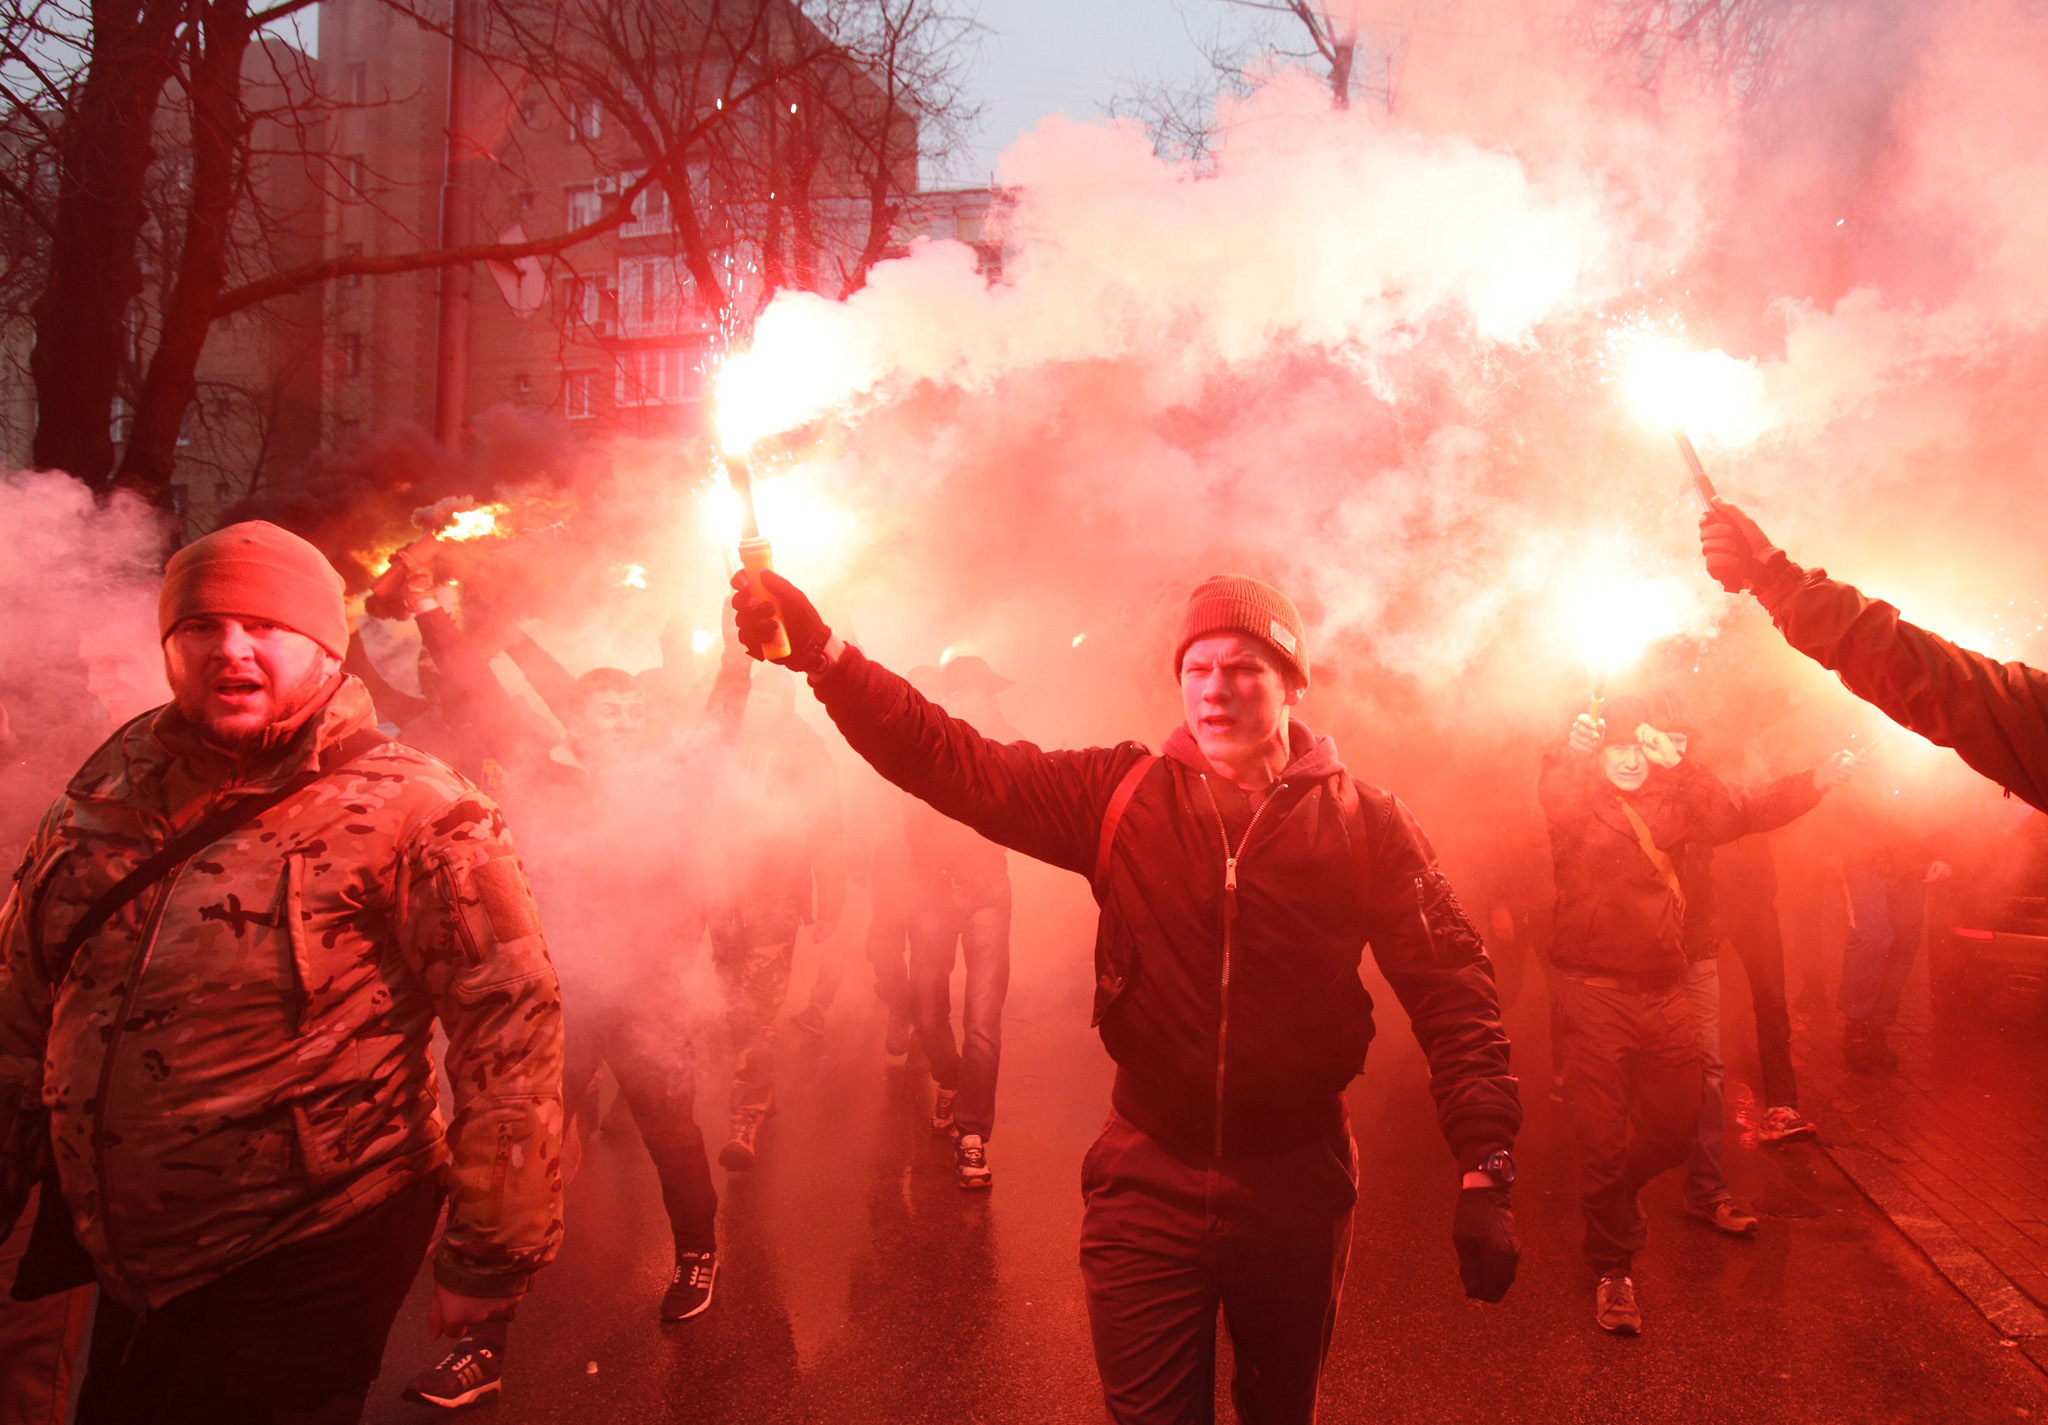 "Members of the Ukrainian volunteer batta...Members of the Ukrainian volunteer battalion Azov hold flares during a protest outside the Ukrainian Security Services (SBU) prison in Kiev on March 1, 2016. The protesters are demanding the release of Stanislav Krasnov, head of the nationalist organisation ""Azov-Crimea"", who is accused of spying for Russia. / AFP / ANATOLII STEPANOVANATOLII STEPANOV/AFP/Getty Images"